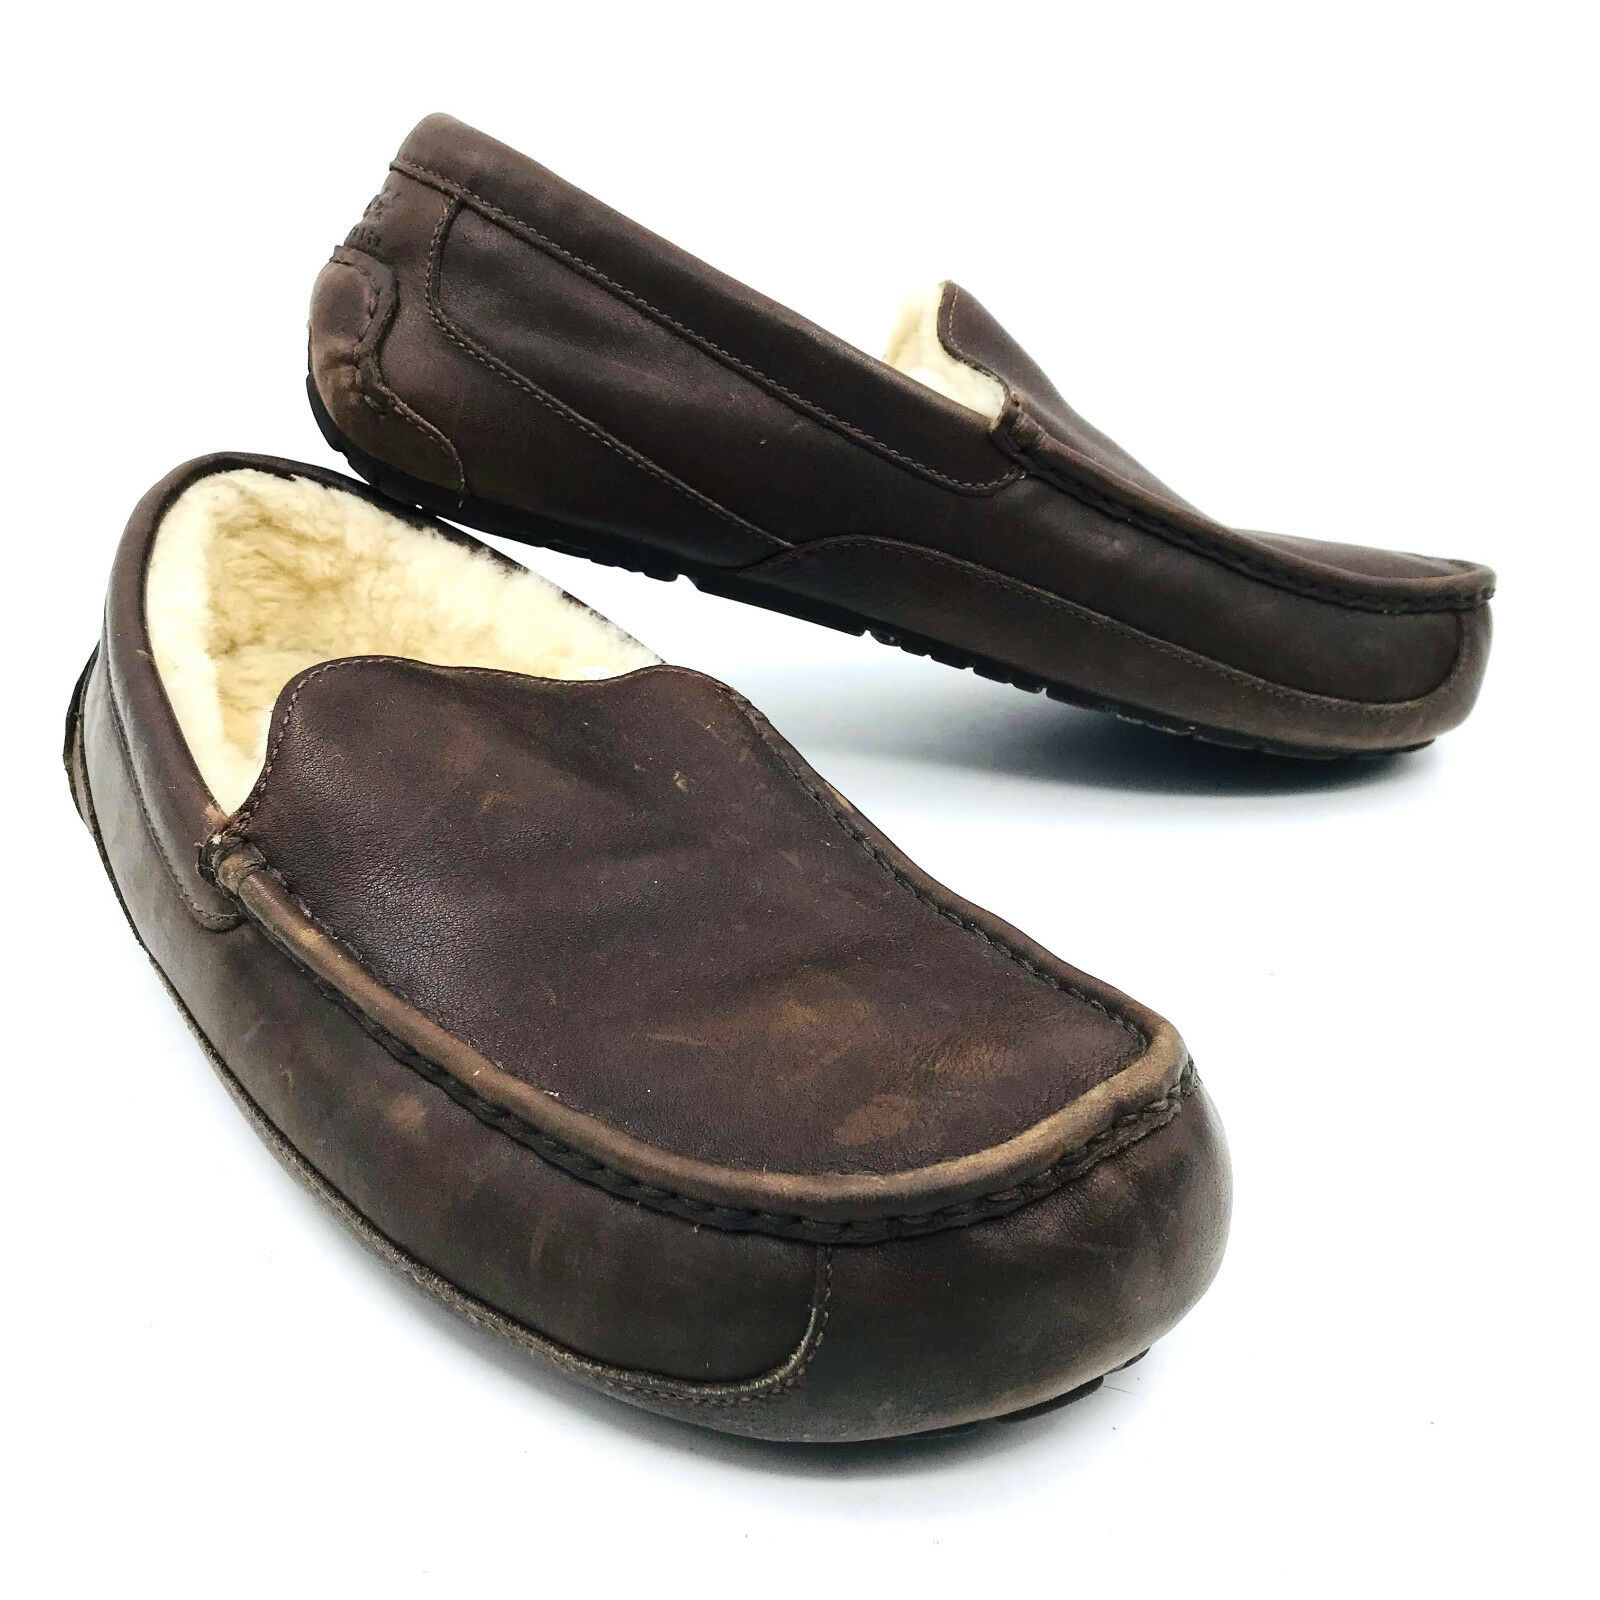 ff4cab3f36d Details about Ugg Australia Ascot Brown Leather Slippers Mens Size 17